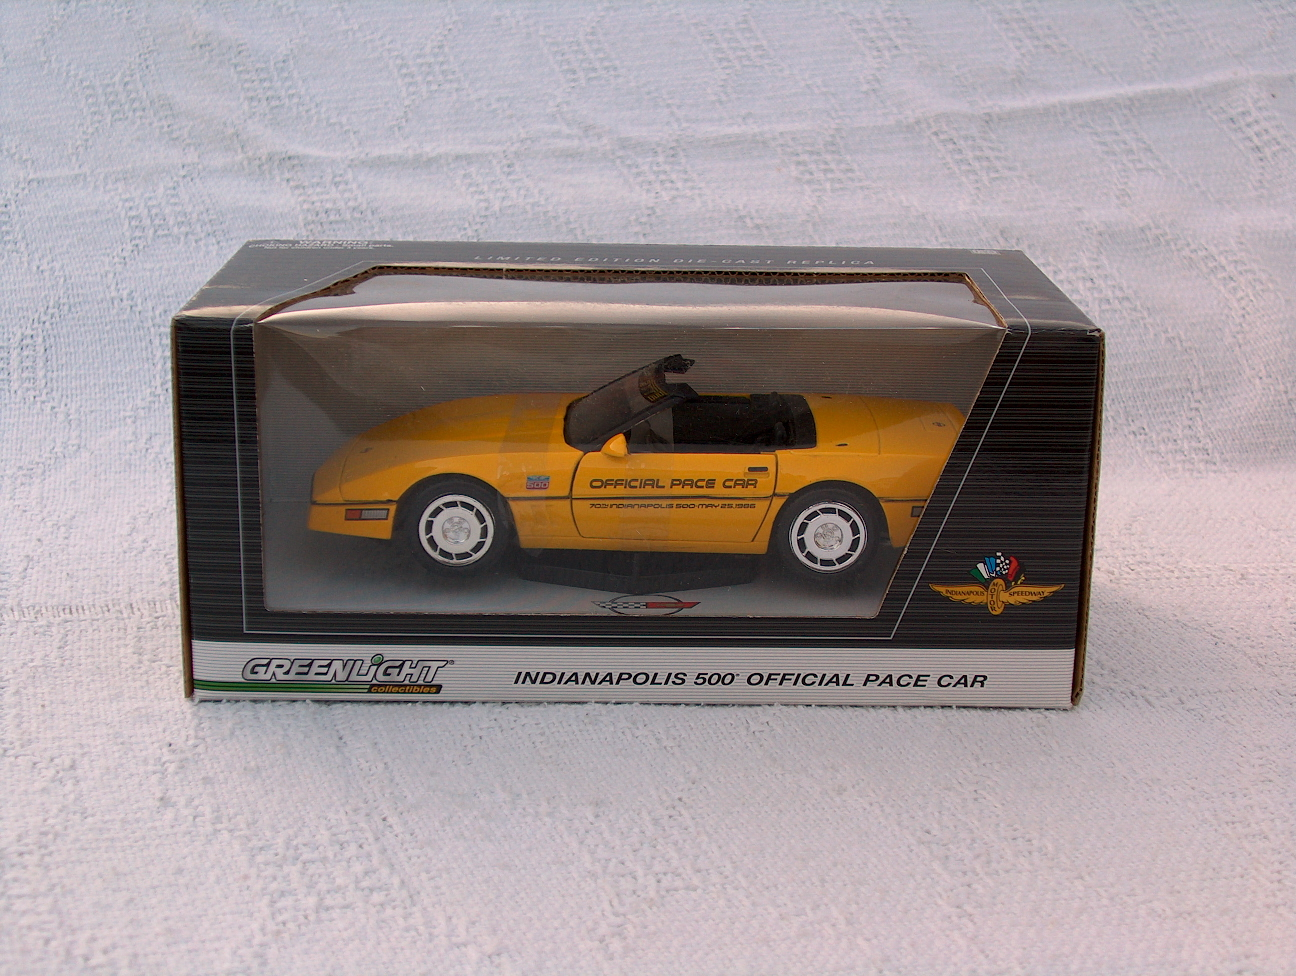 Diecast king maisto 1998 chevrolet corvette indy 500 pace car - 1986 Indy Pace Car 1 24 Scale By Greenlight Collectibles 19 95